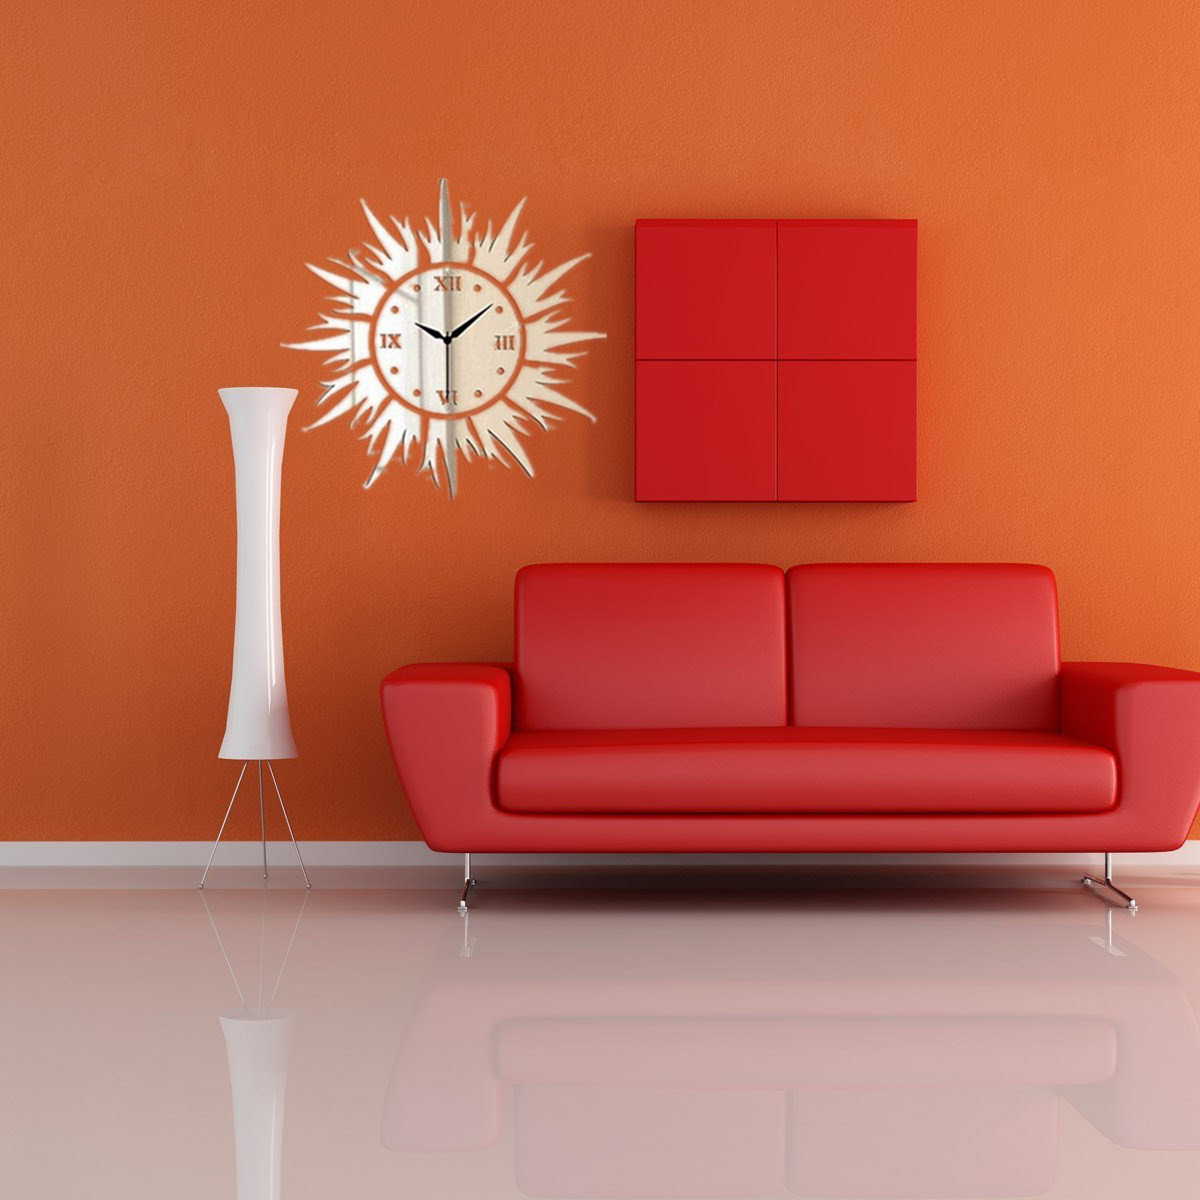 DIY 3D Sun Shape Mirror Wall Clock Wall Stickers Home Decor Part 88